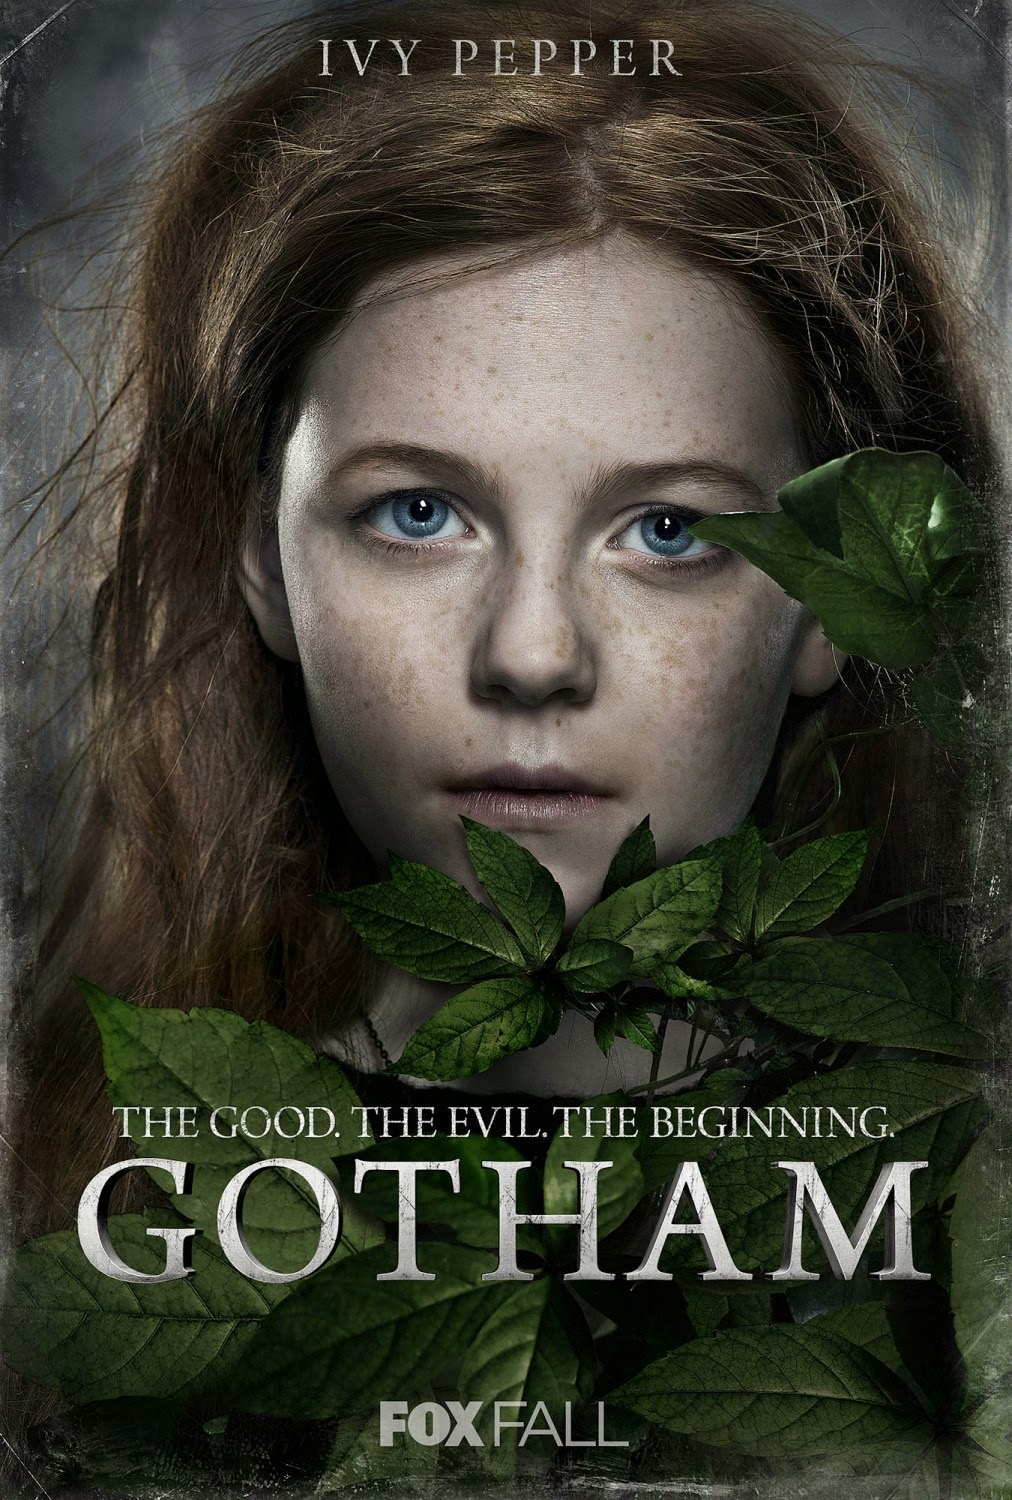 "Gotham ""The Good. The Evil. The Beginning."" Character TV Poster Set - Clare Foley as Ivy Pepper-Poison Ivy"